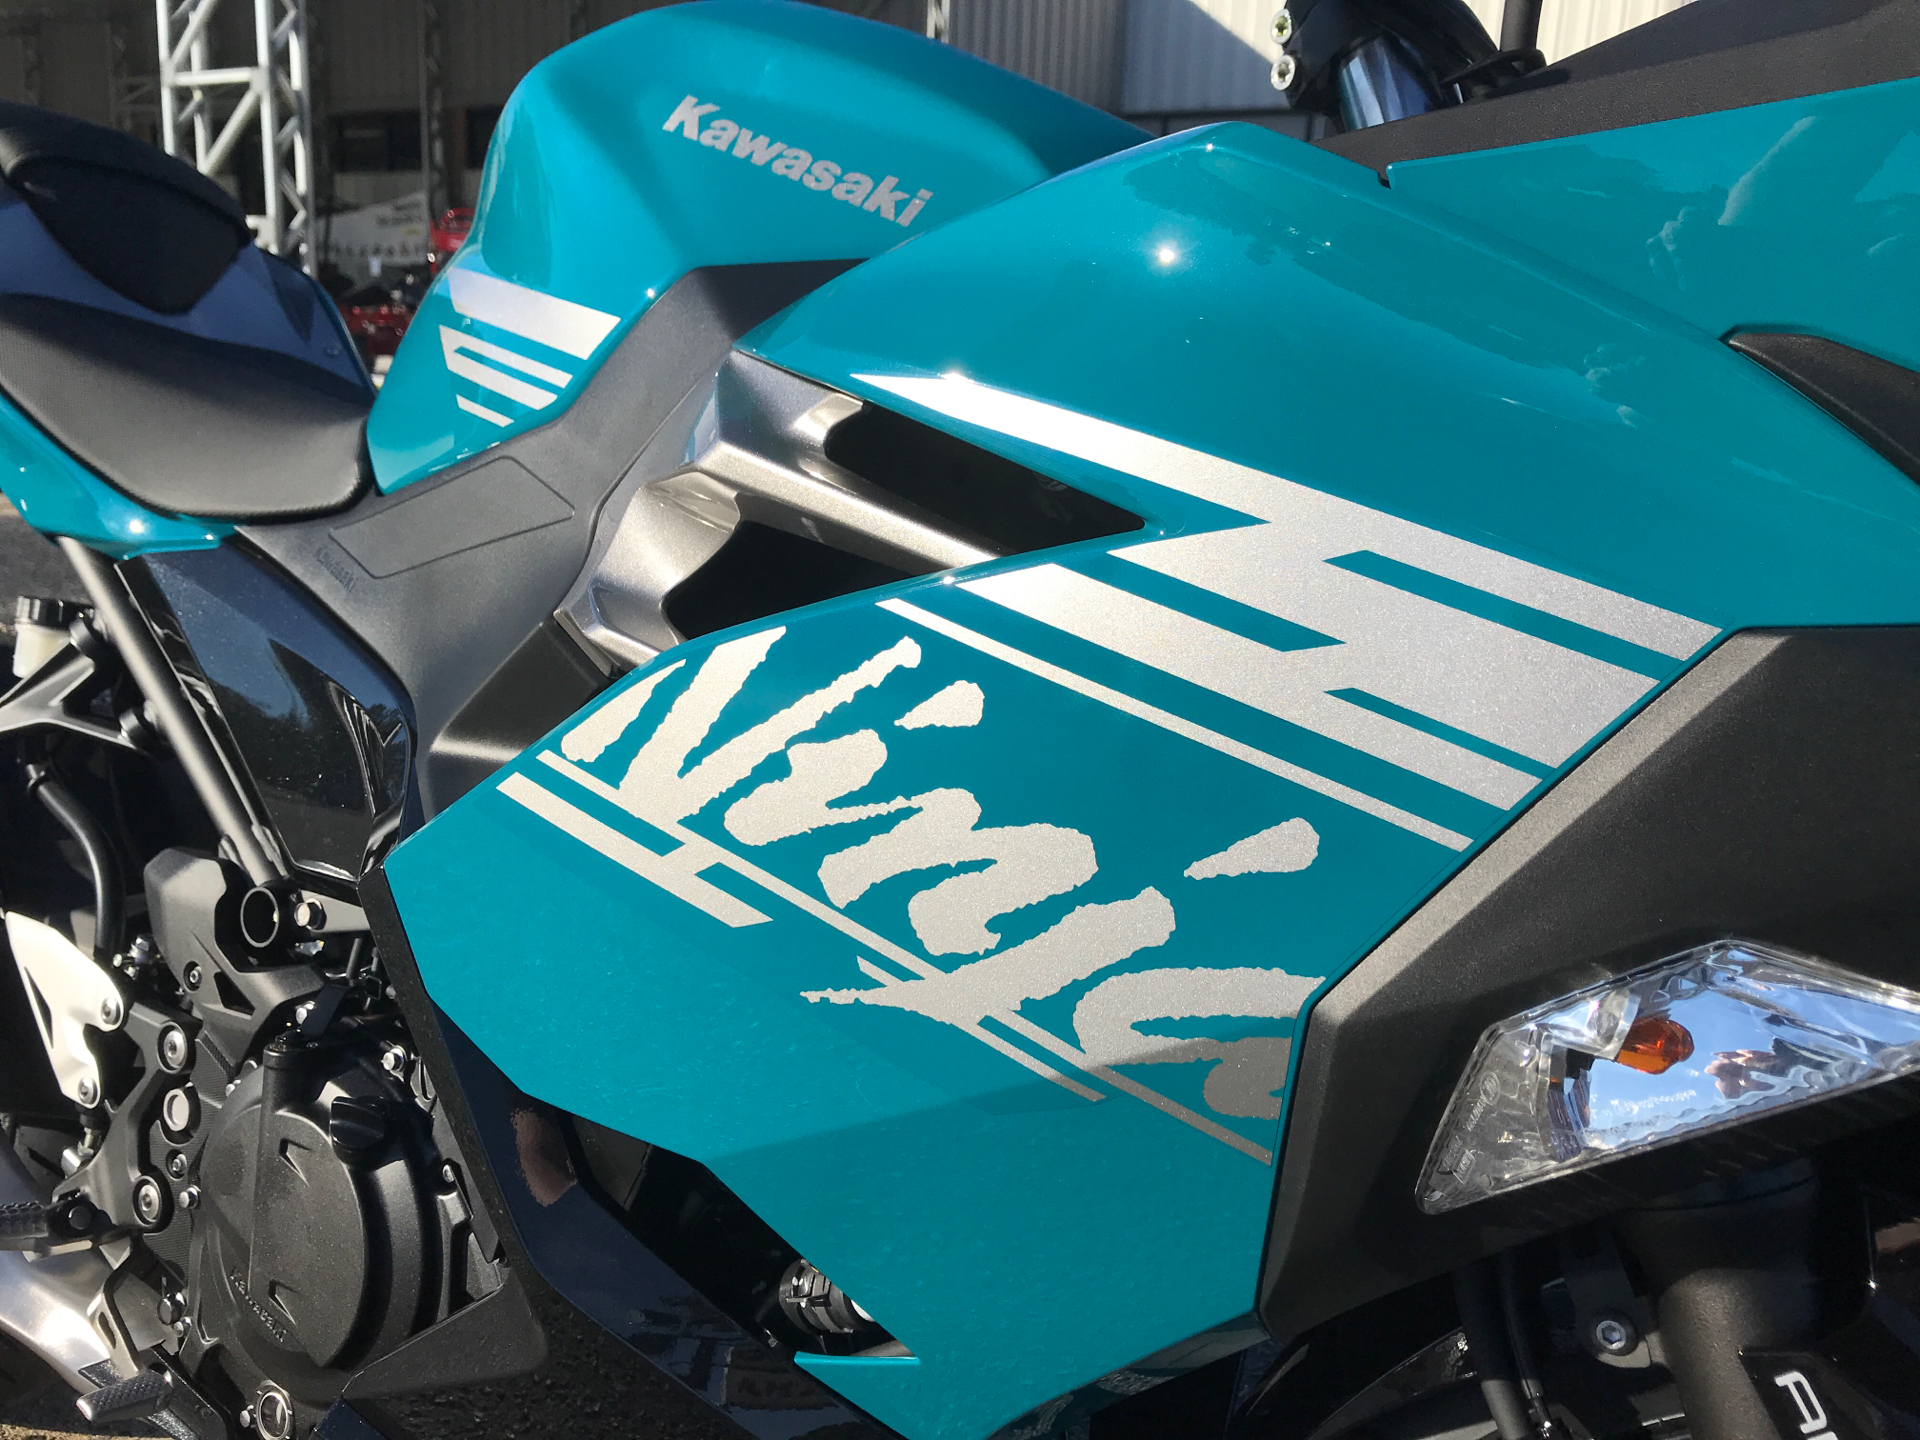 2021 Kawasaki Ninja 400 ABS in Greenville, North Carolina - Photo 11